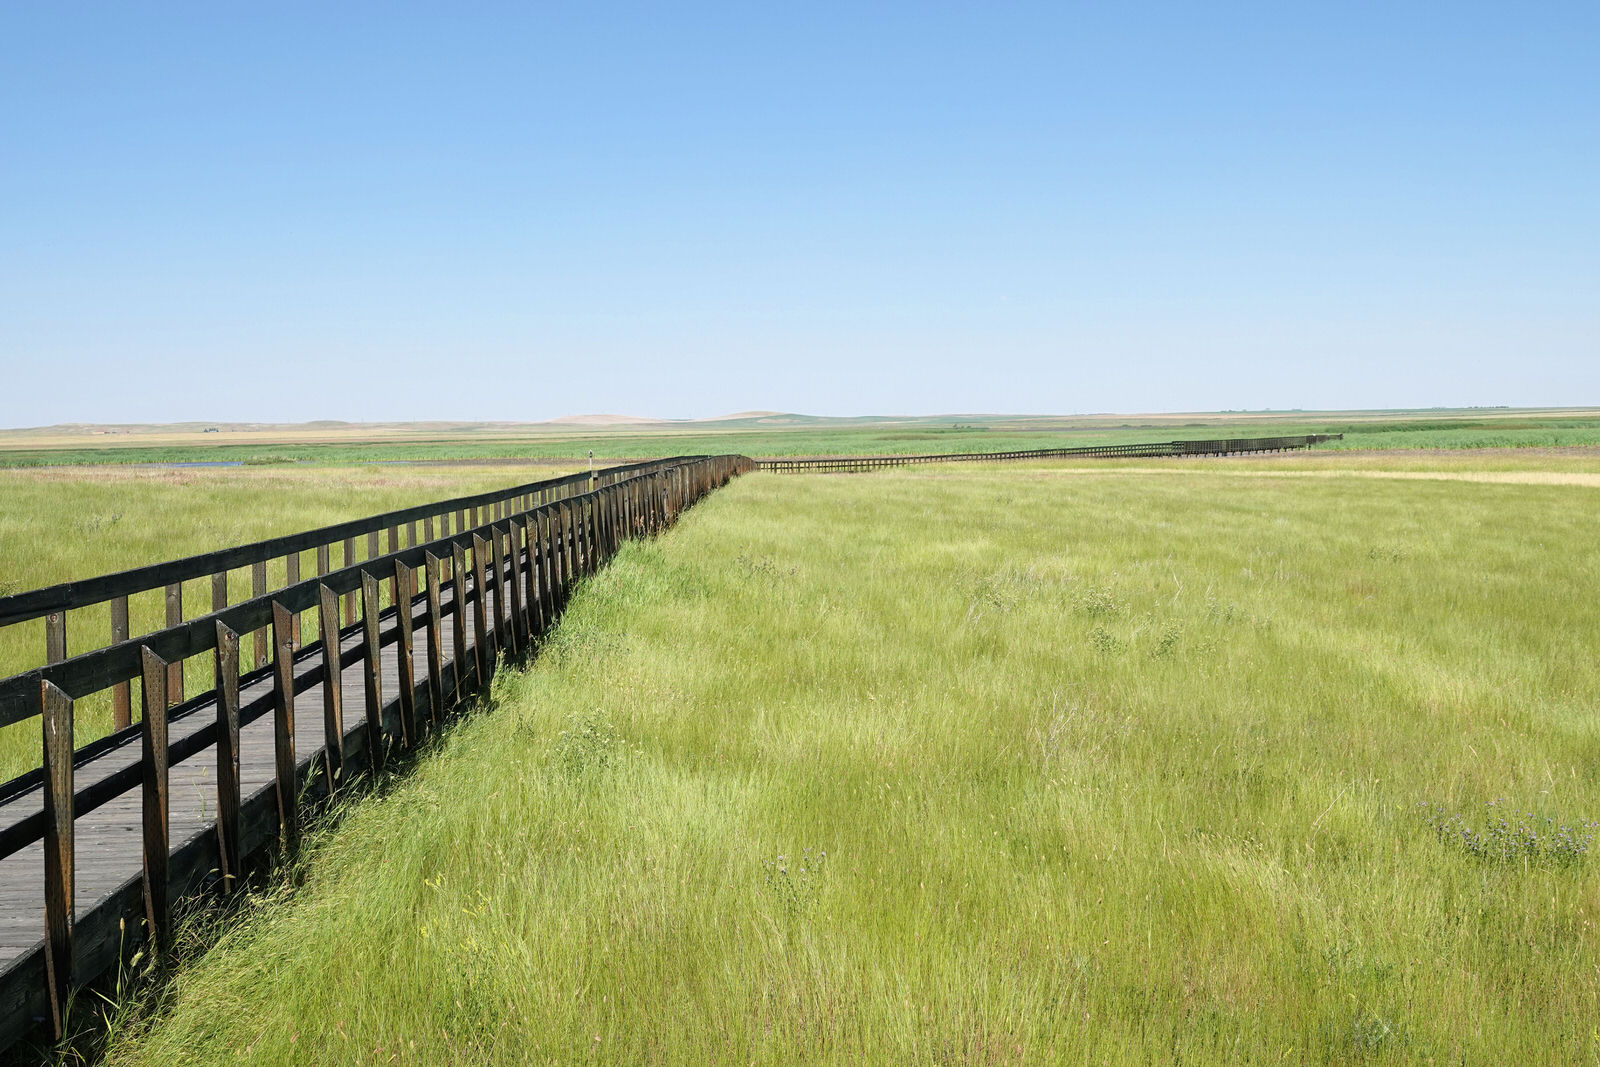 photo: Prairie-Marsh Boardwalk - Benton Lake NWR - 7-20-18. Photo by Jim Walla.